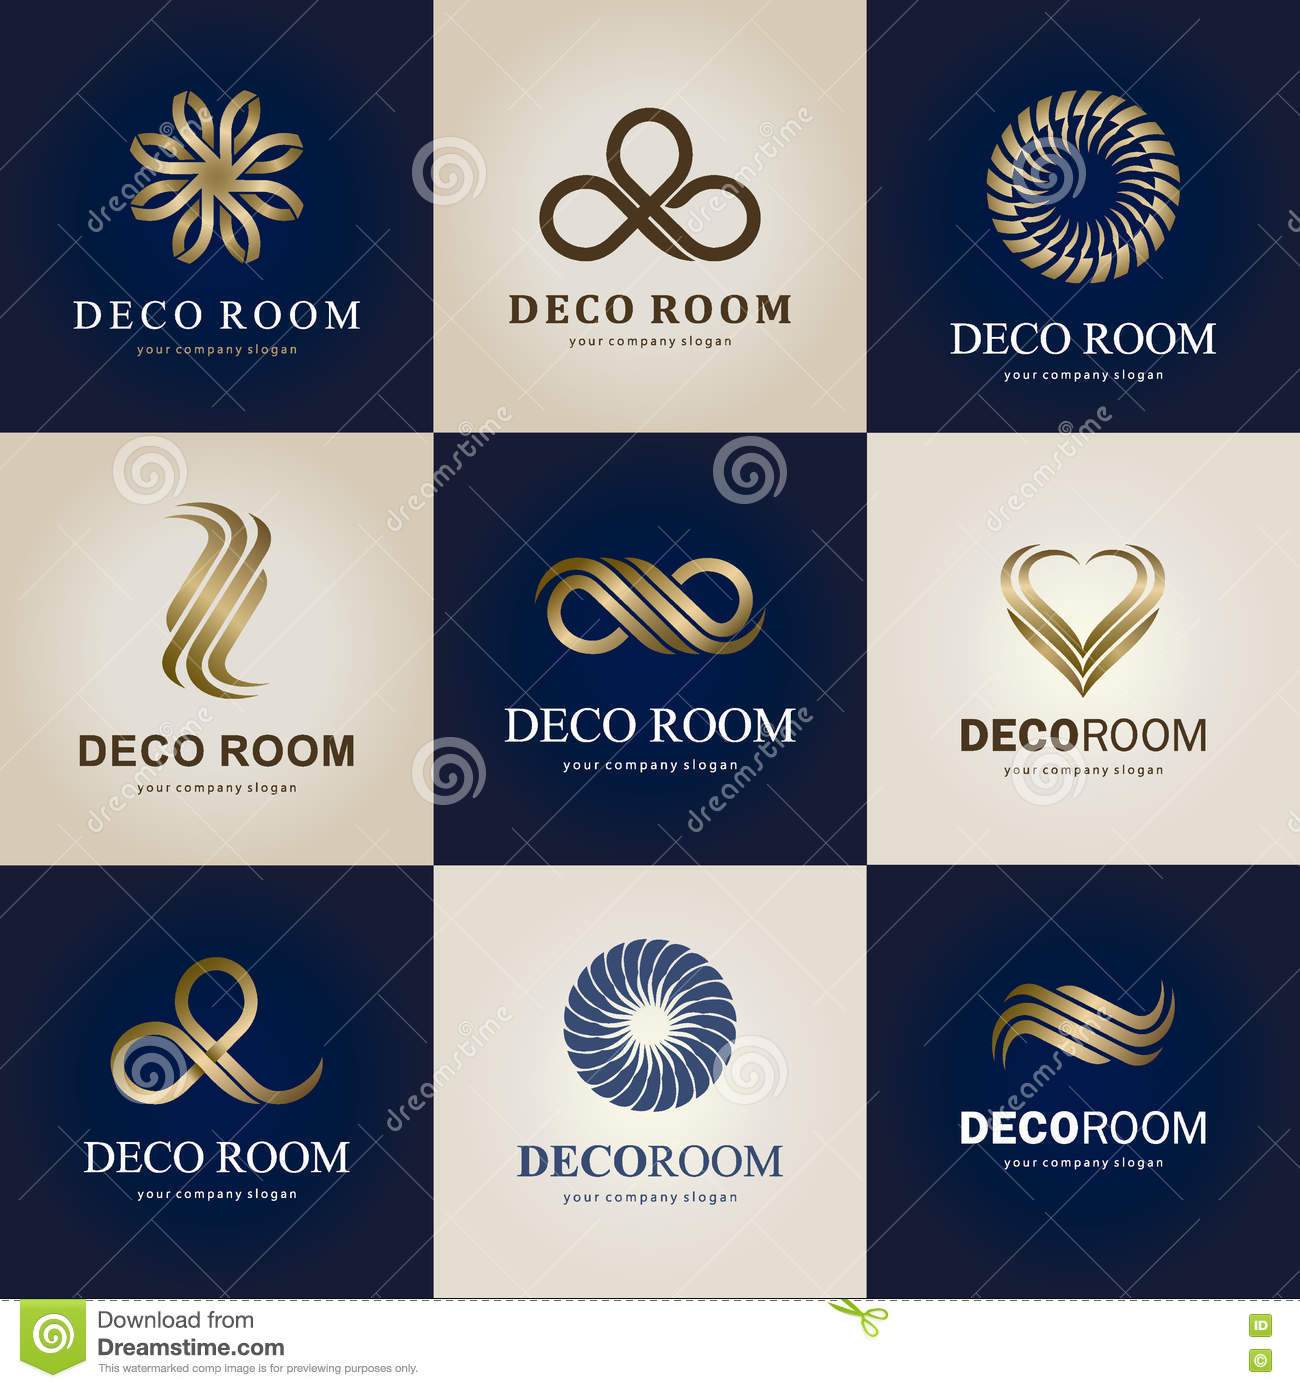 A Collection Of Logos For Interior Decor Items And Home Decoration